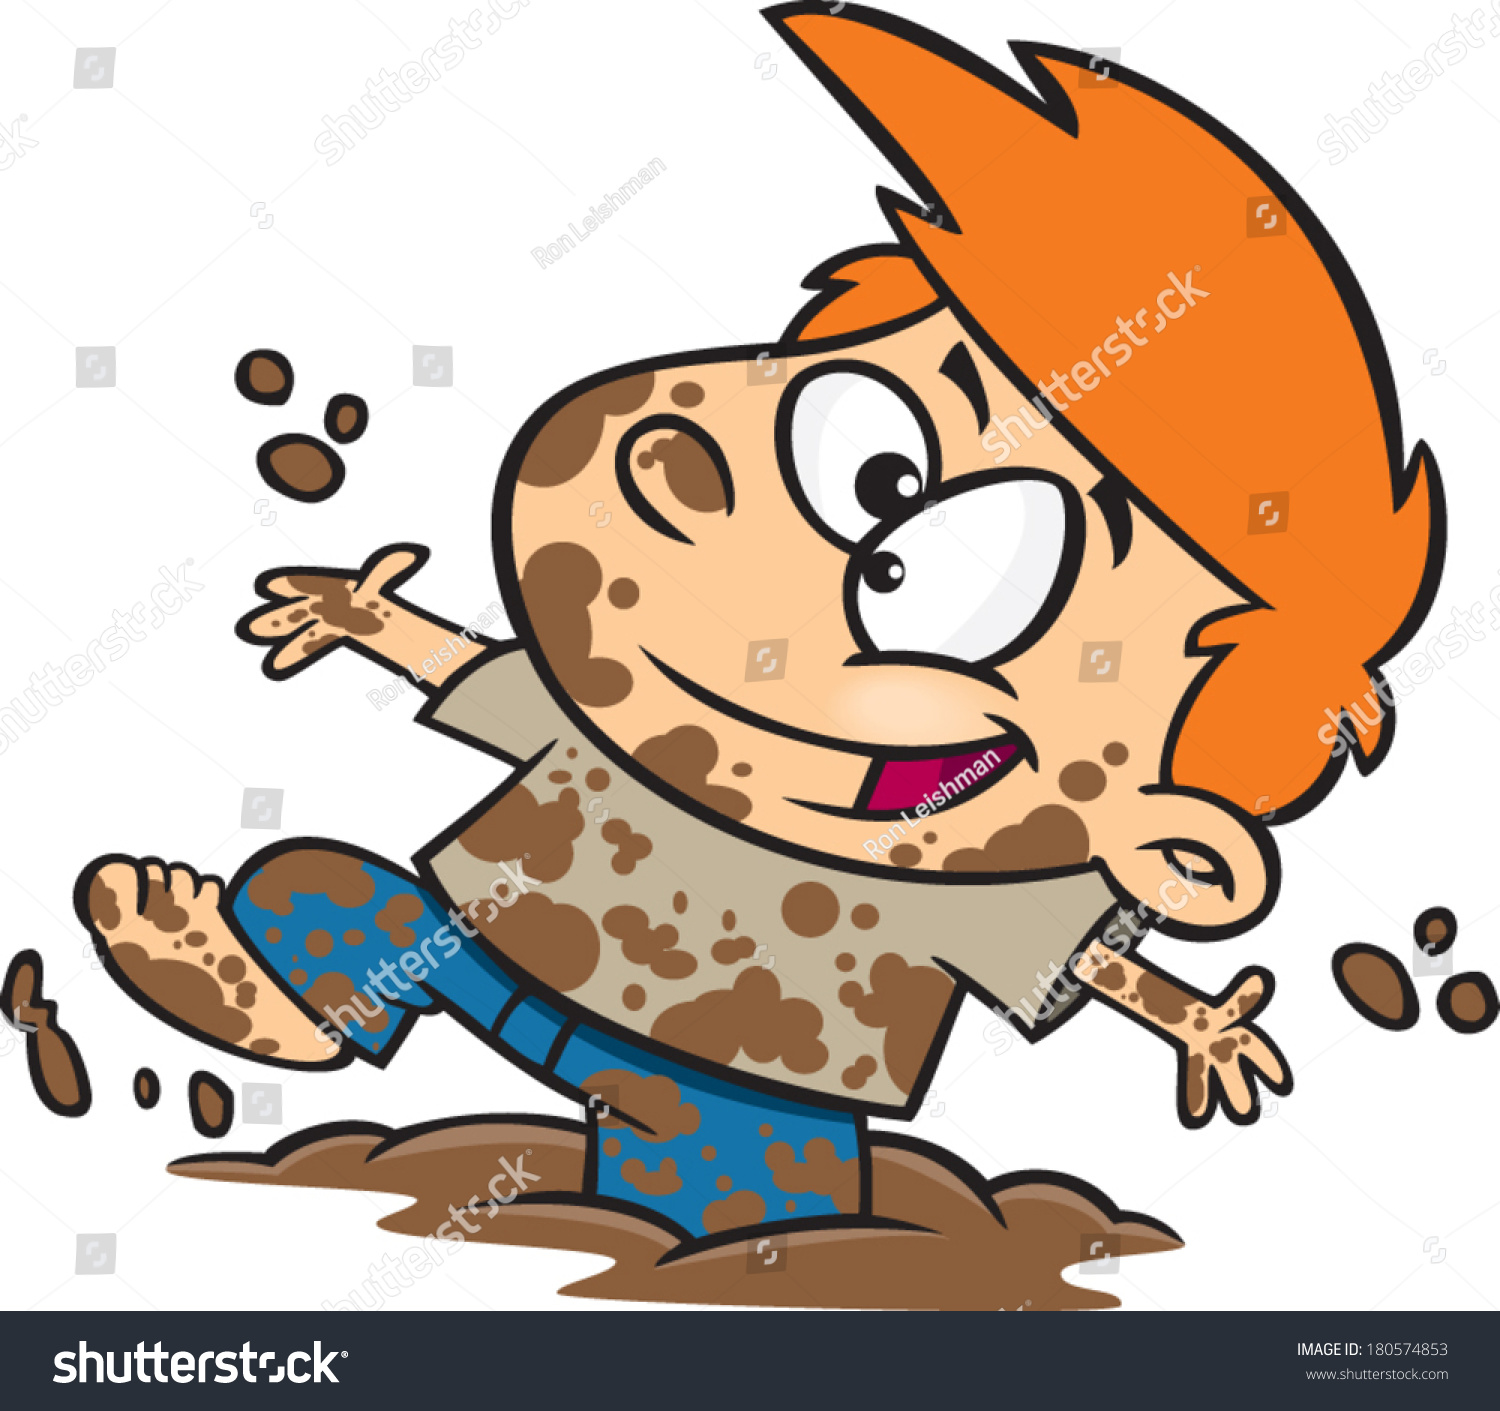 Boston Bruins together with Straight Outta  pton Reality besides Digital Dimensions Hamburger Helper Hand also Stock Vector Cartoon Boy Covered In Mud in addition Snow Queen  2002 film. on ice cartoon character